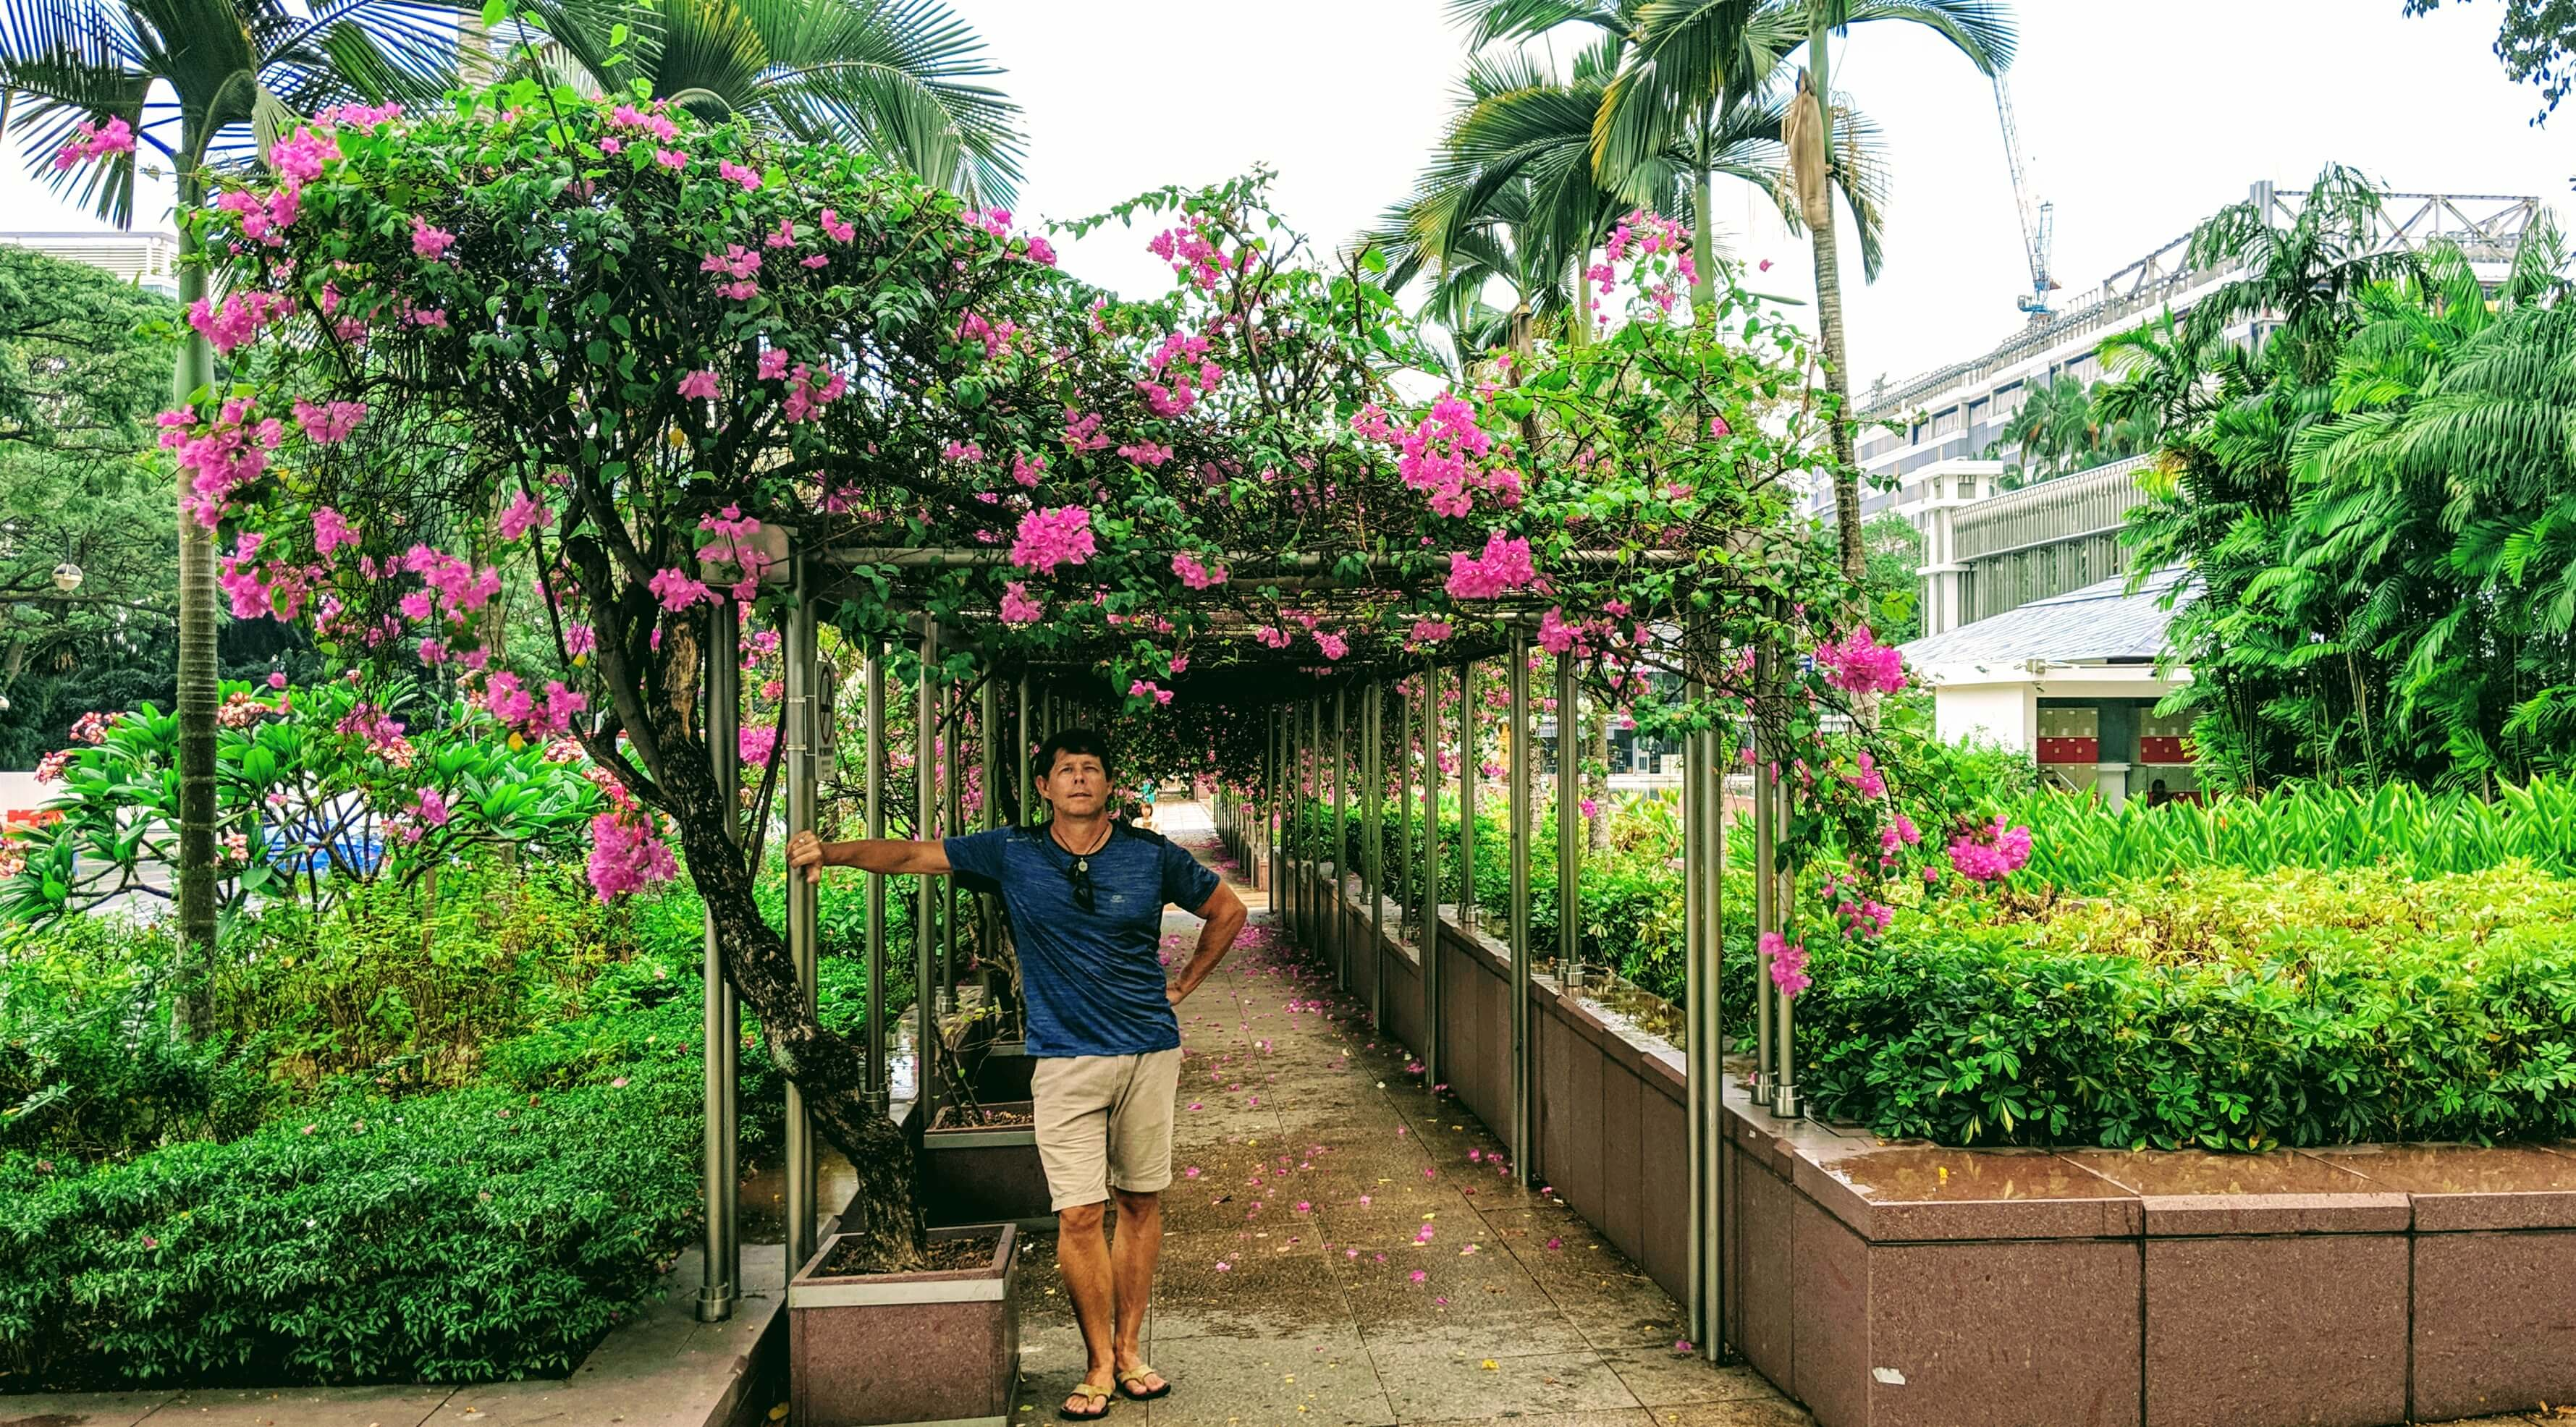 Rob in front of the Presidential Palace and Gardens bougainvillea